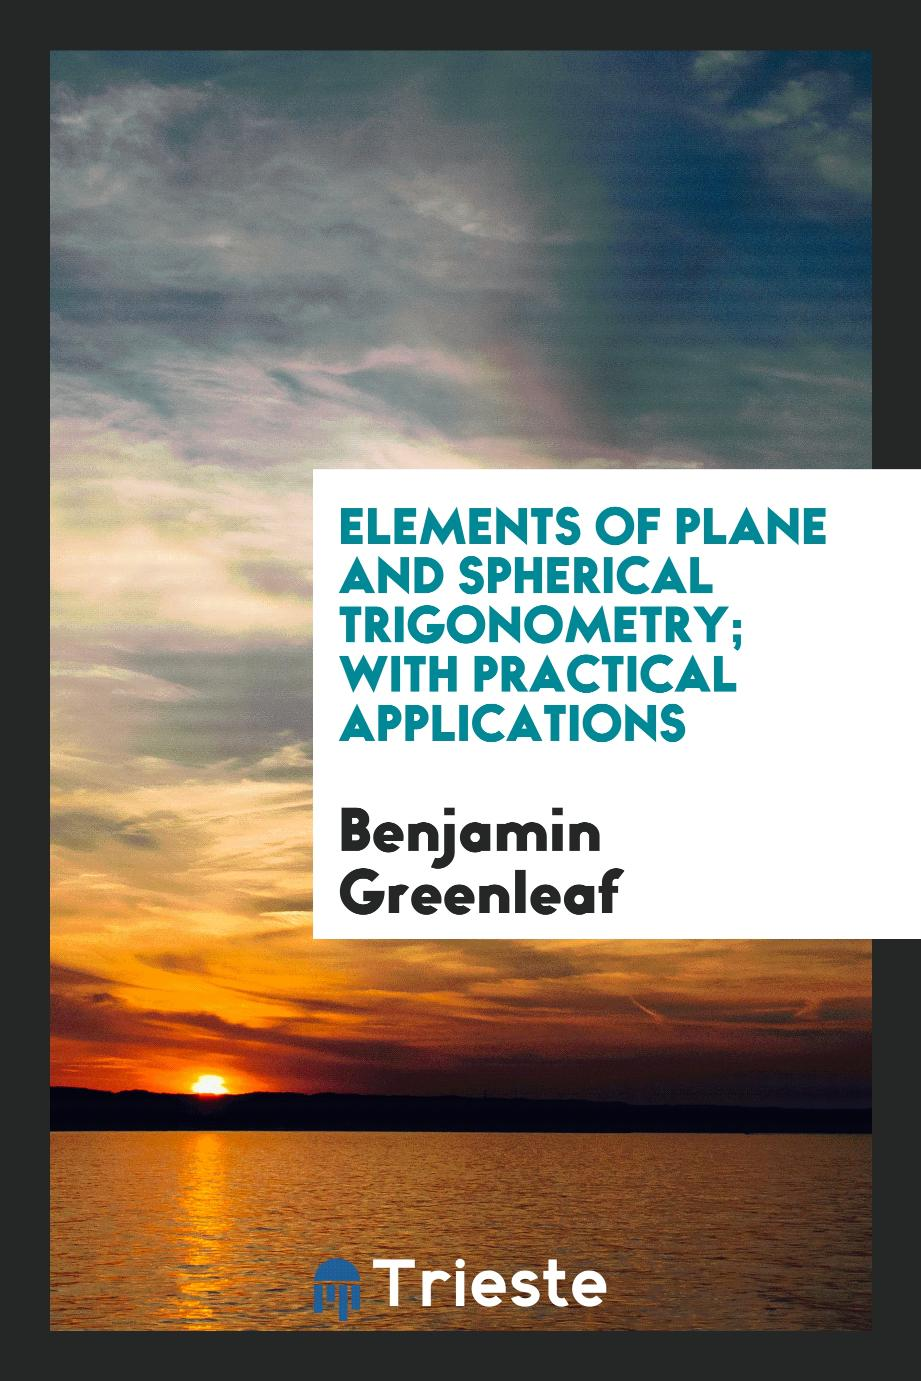 Elements of Plane and Spherical Trigonometry; With Practical Applications